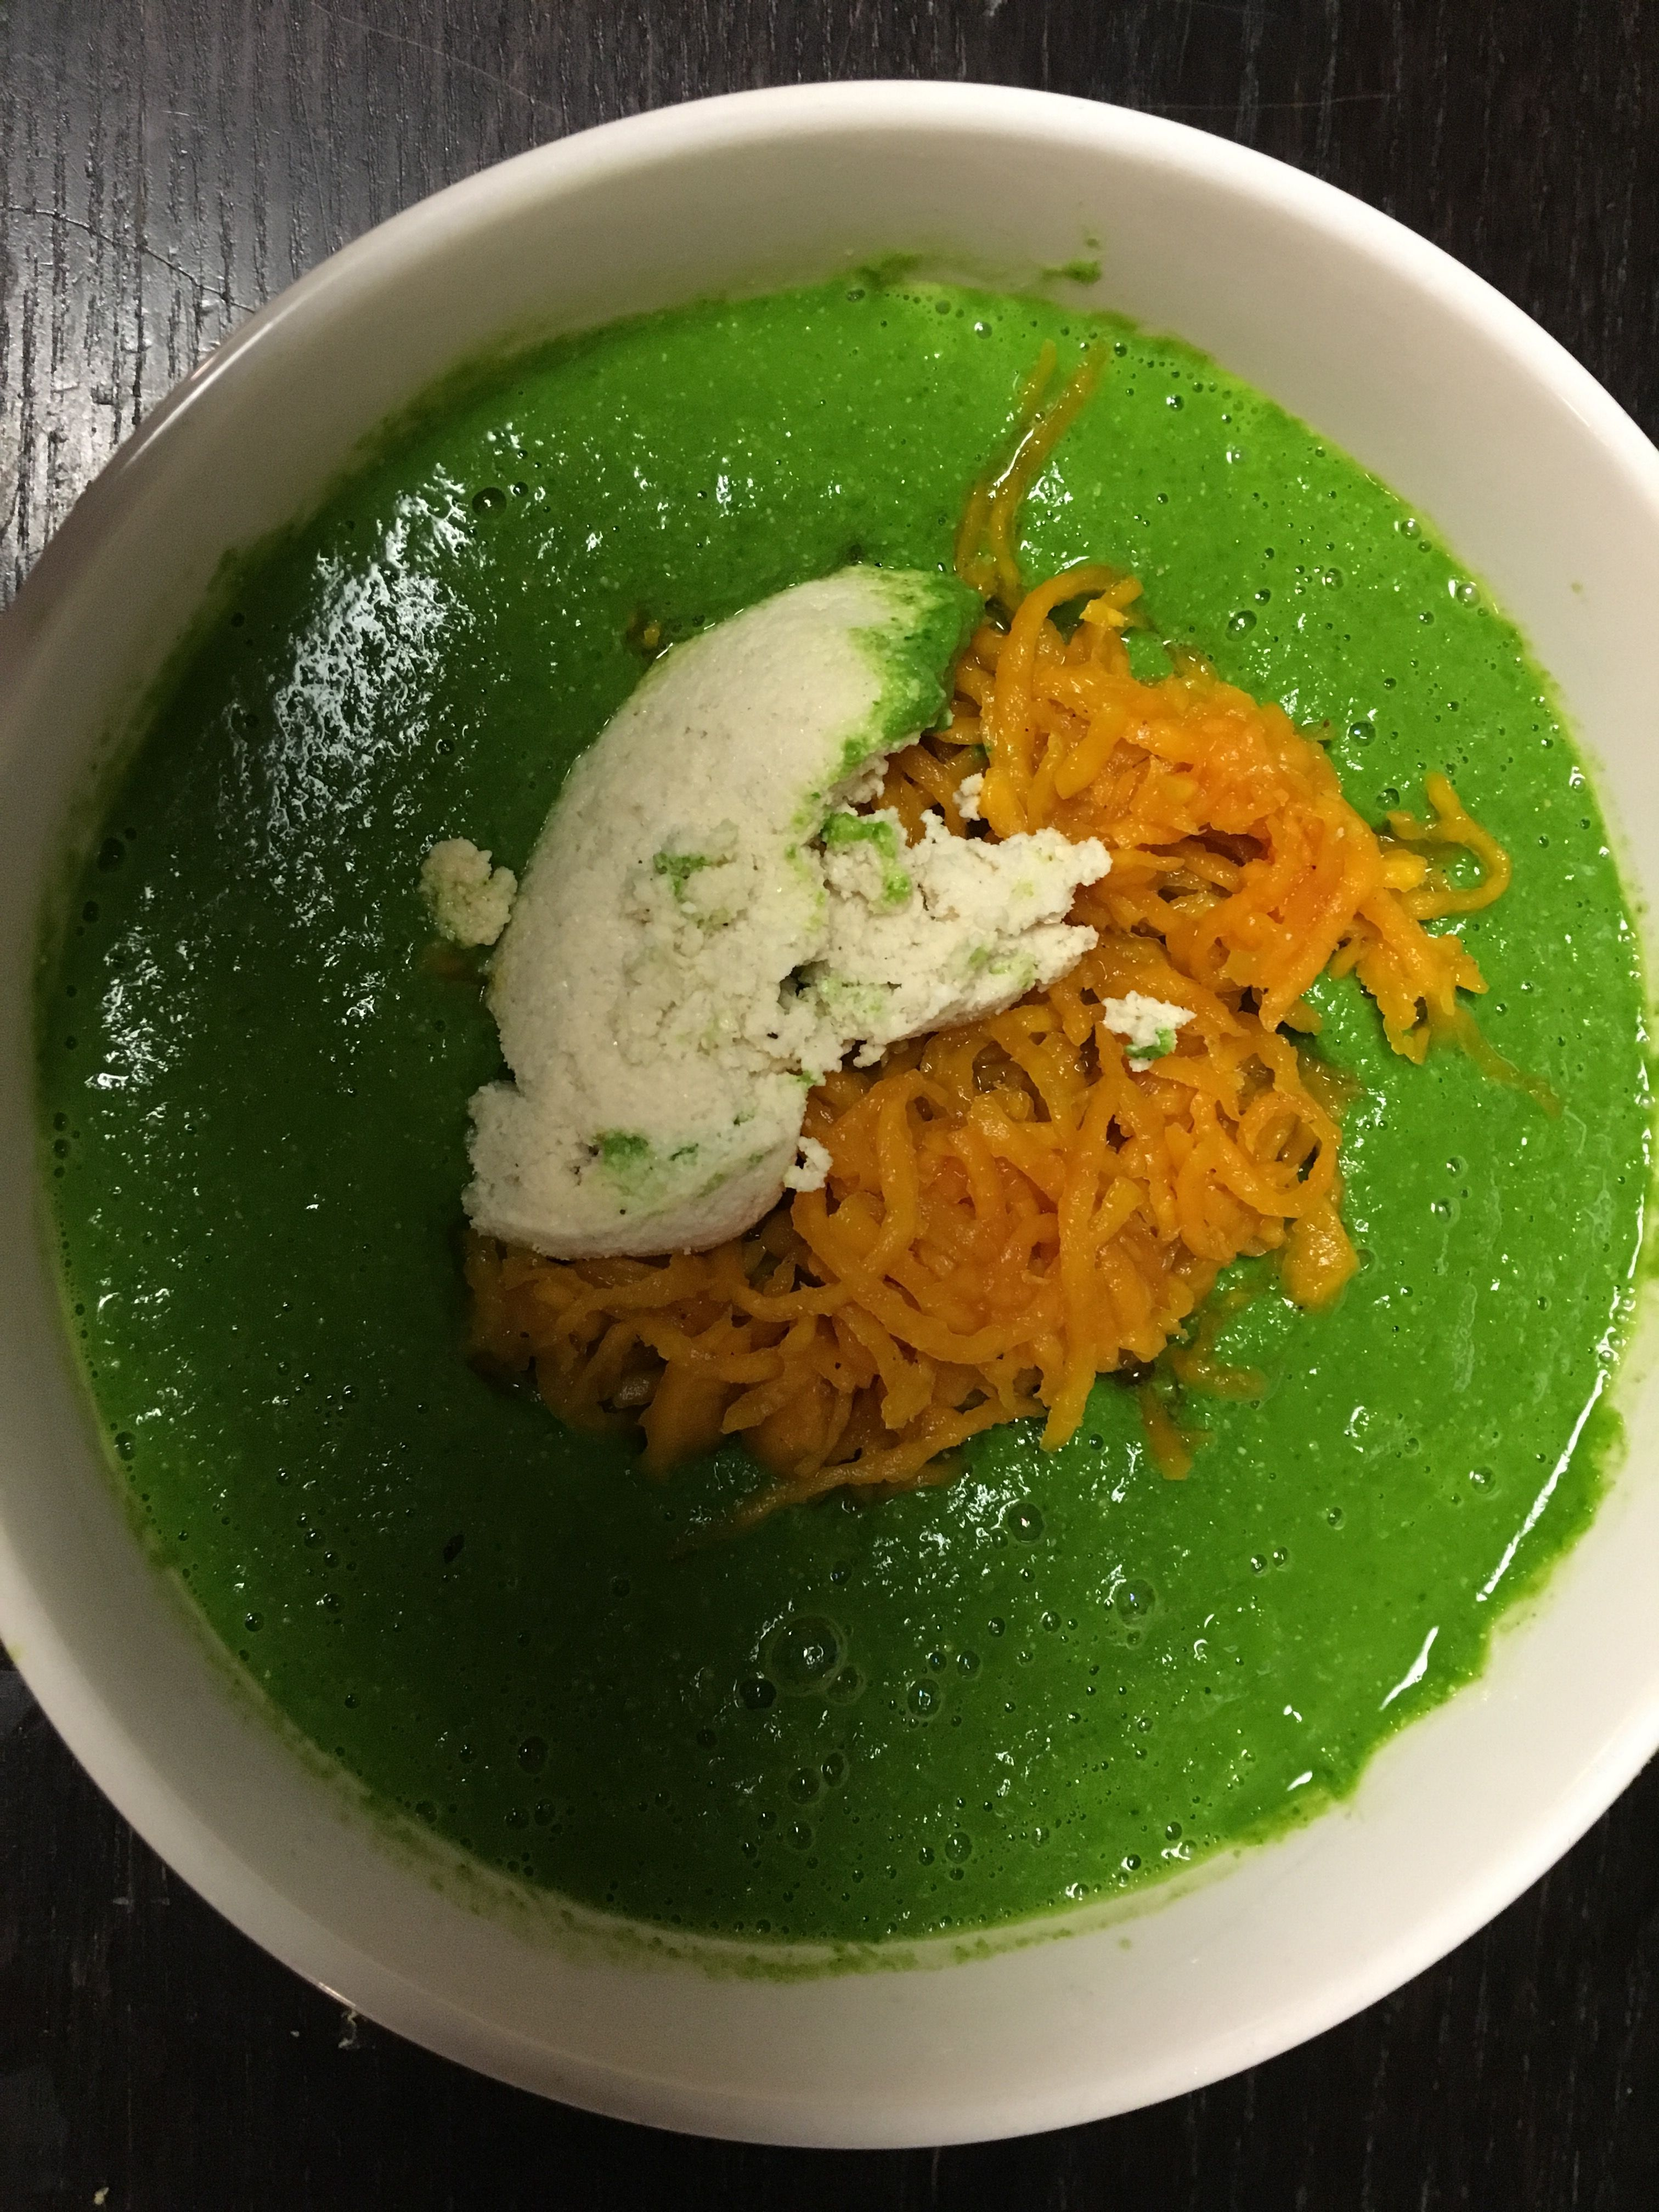 Creamy vegan kale soup with fermented golden beets and almond cheese